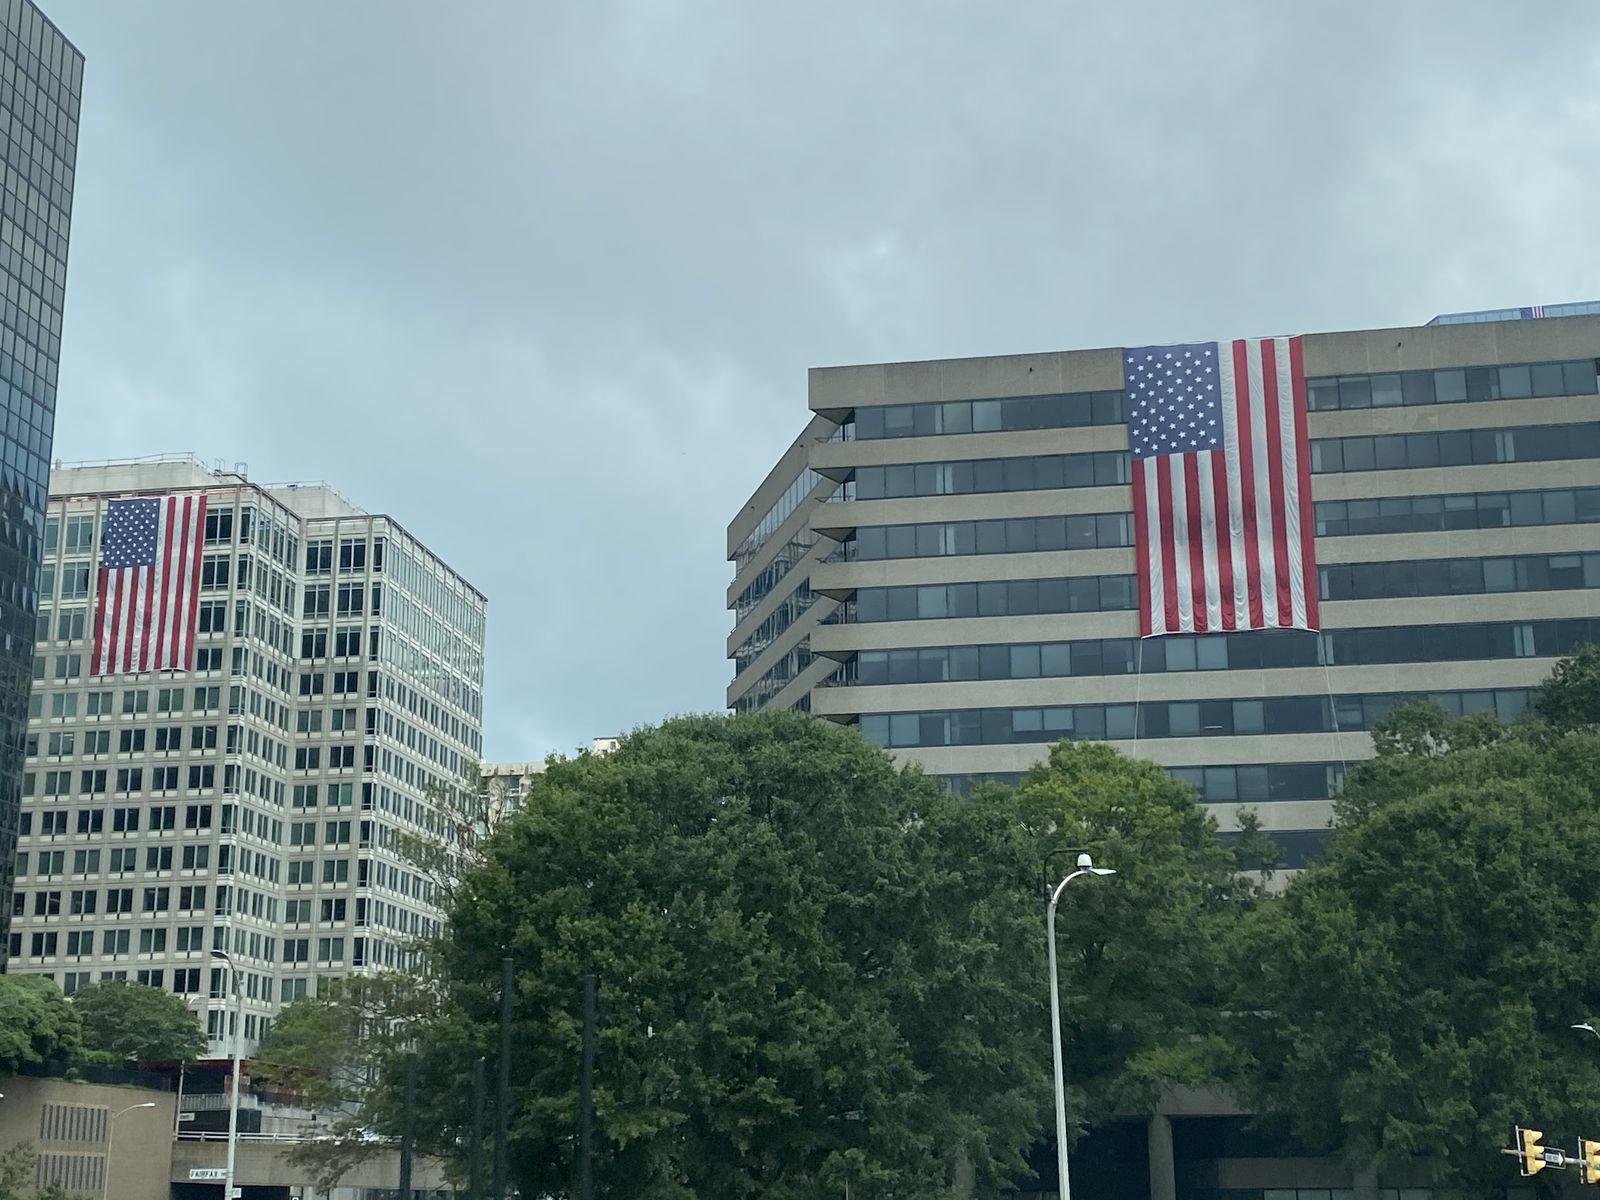 <p>This is the 14th year building owners in the Rosslyn neighborhood have come together to mark the anniversary with the American flag display. (ABC7)</p>